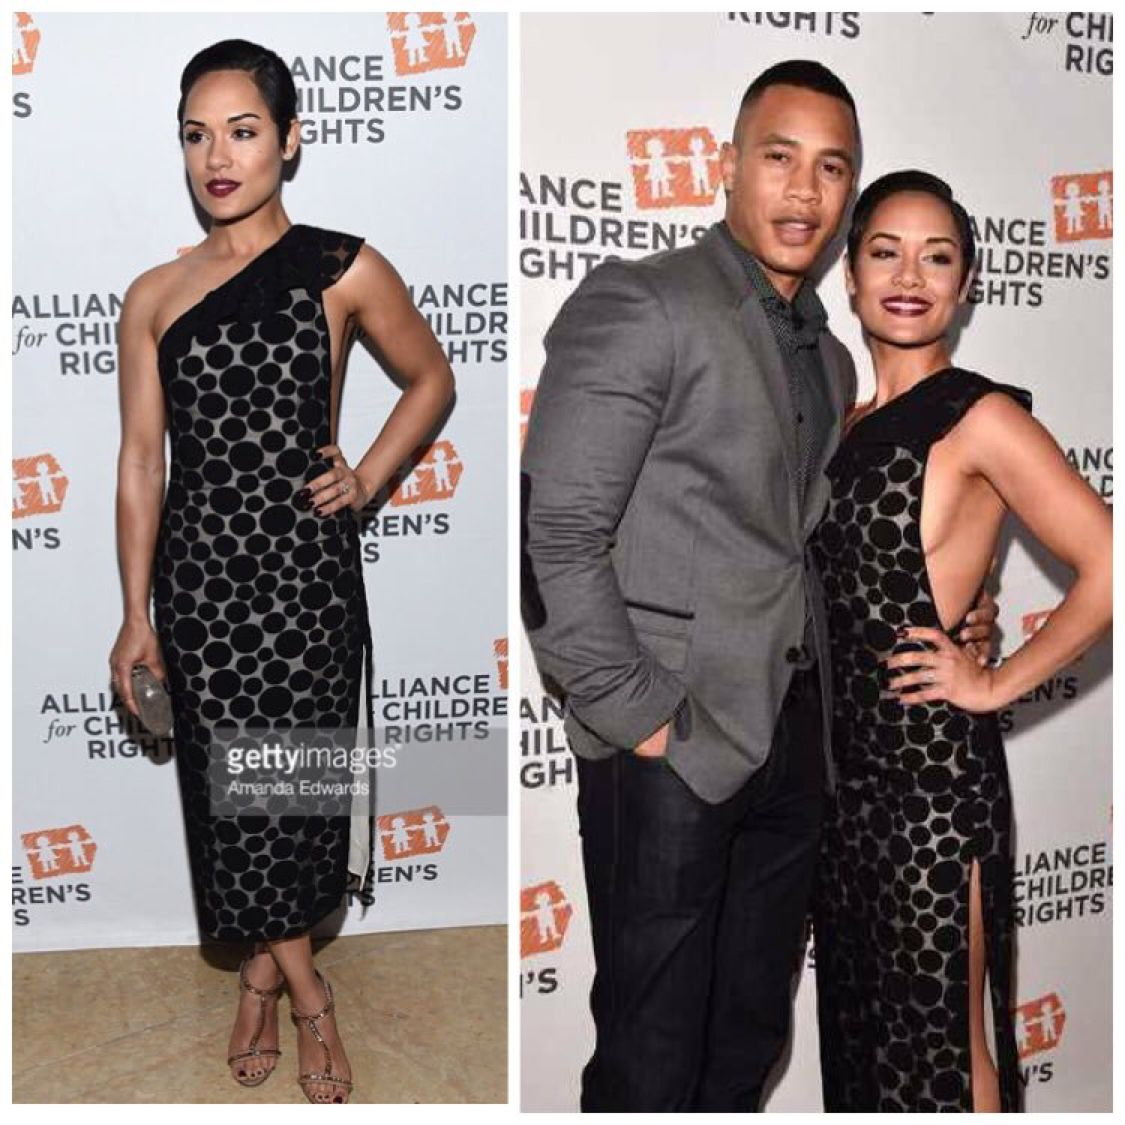 Pin by Vanessa on Empire   Grace gealey, Celebrities, Fashion